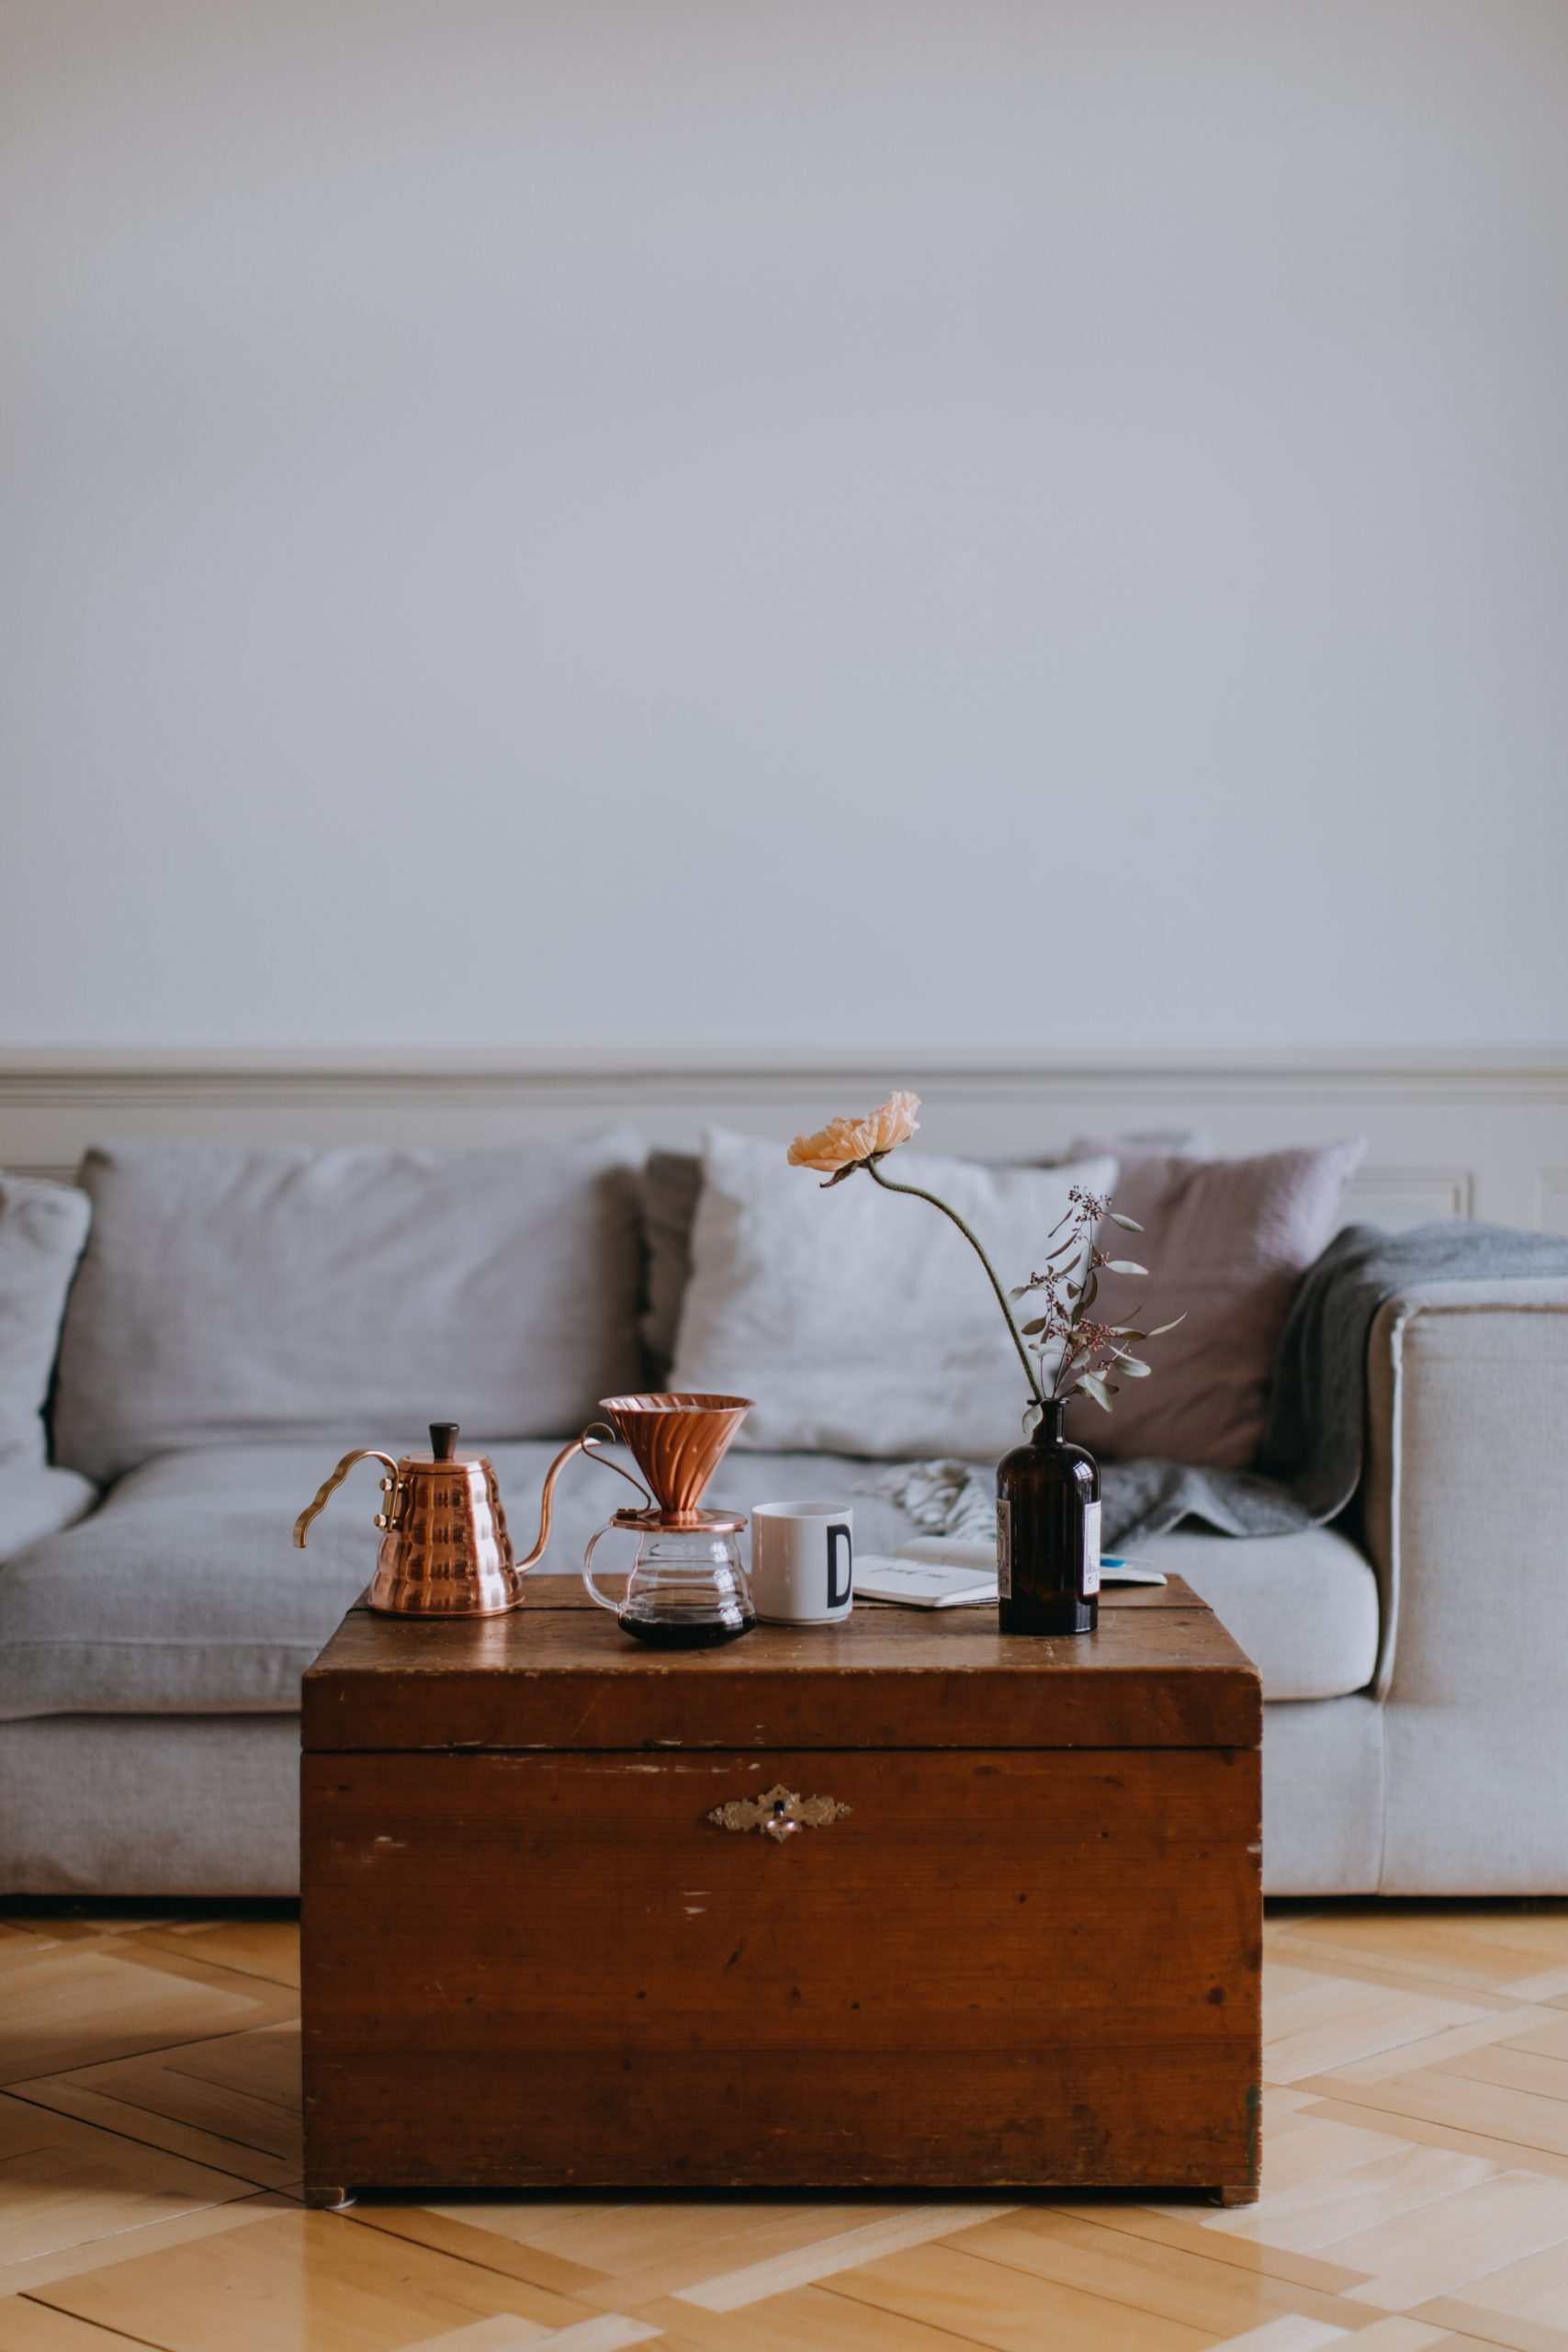 Benefits of Redecorating your Home